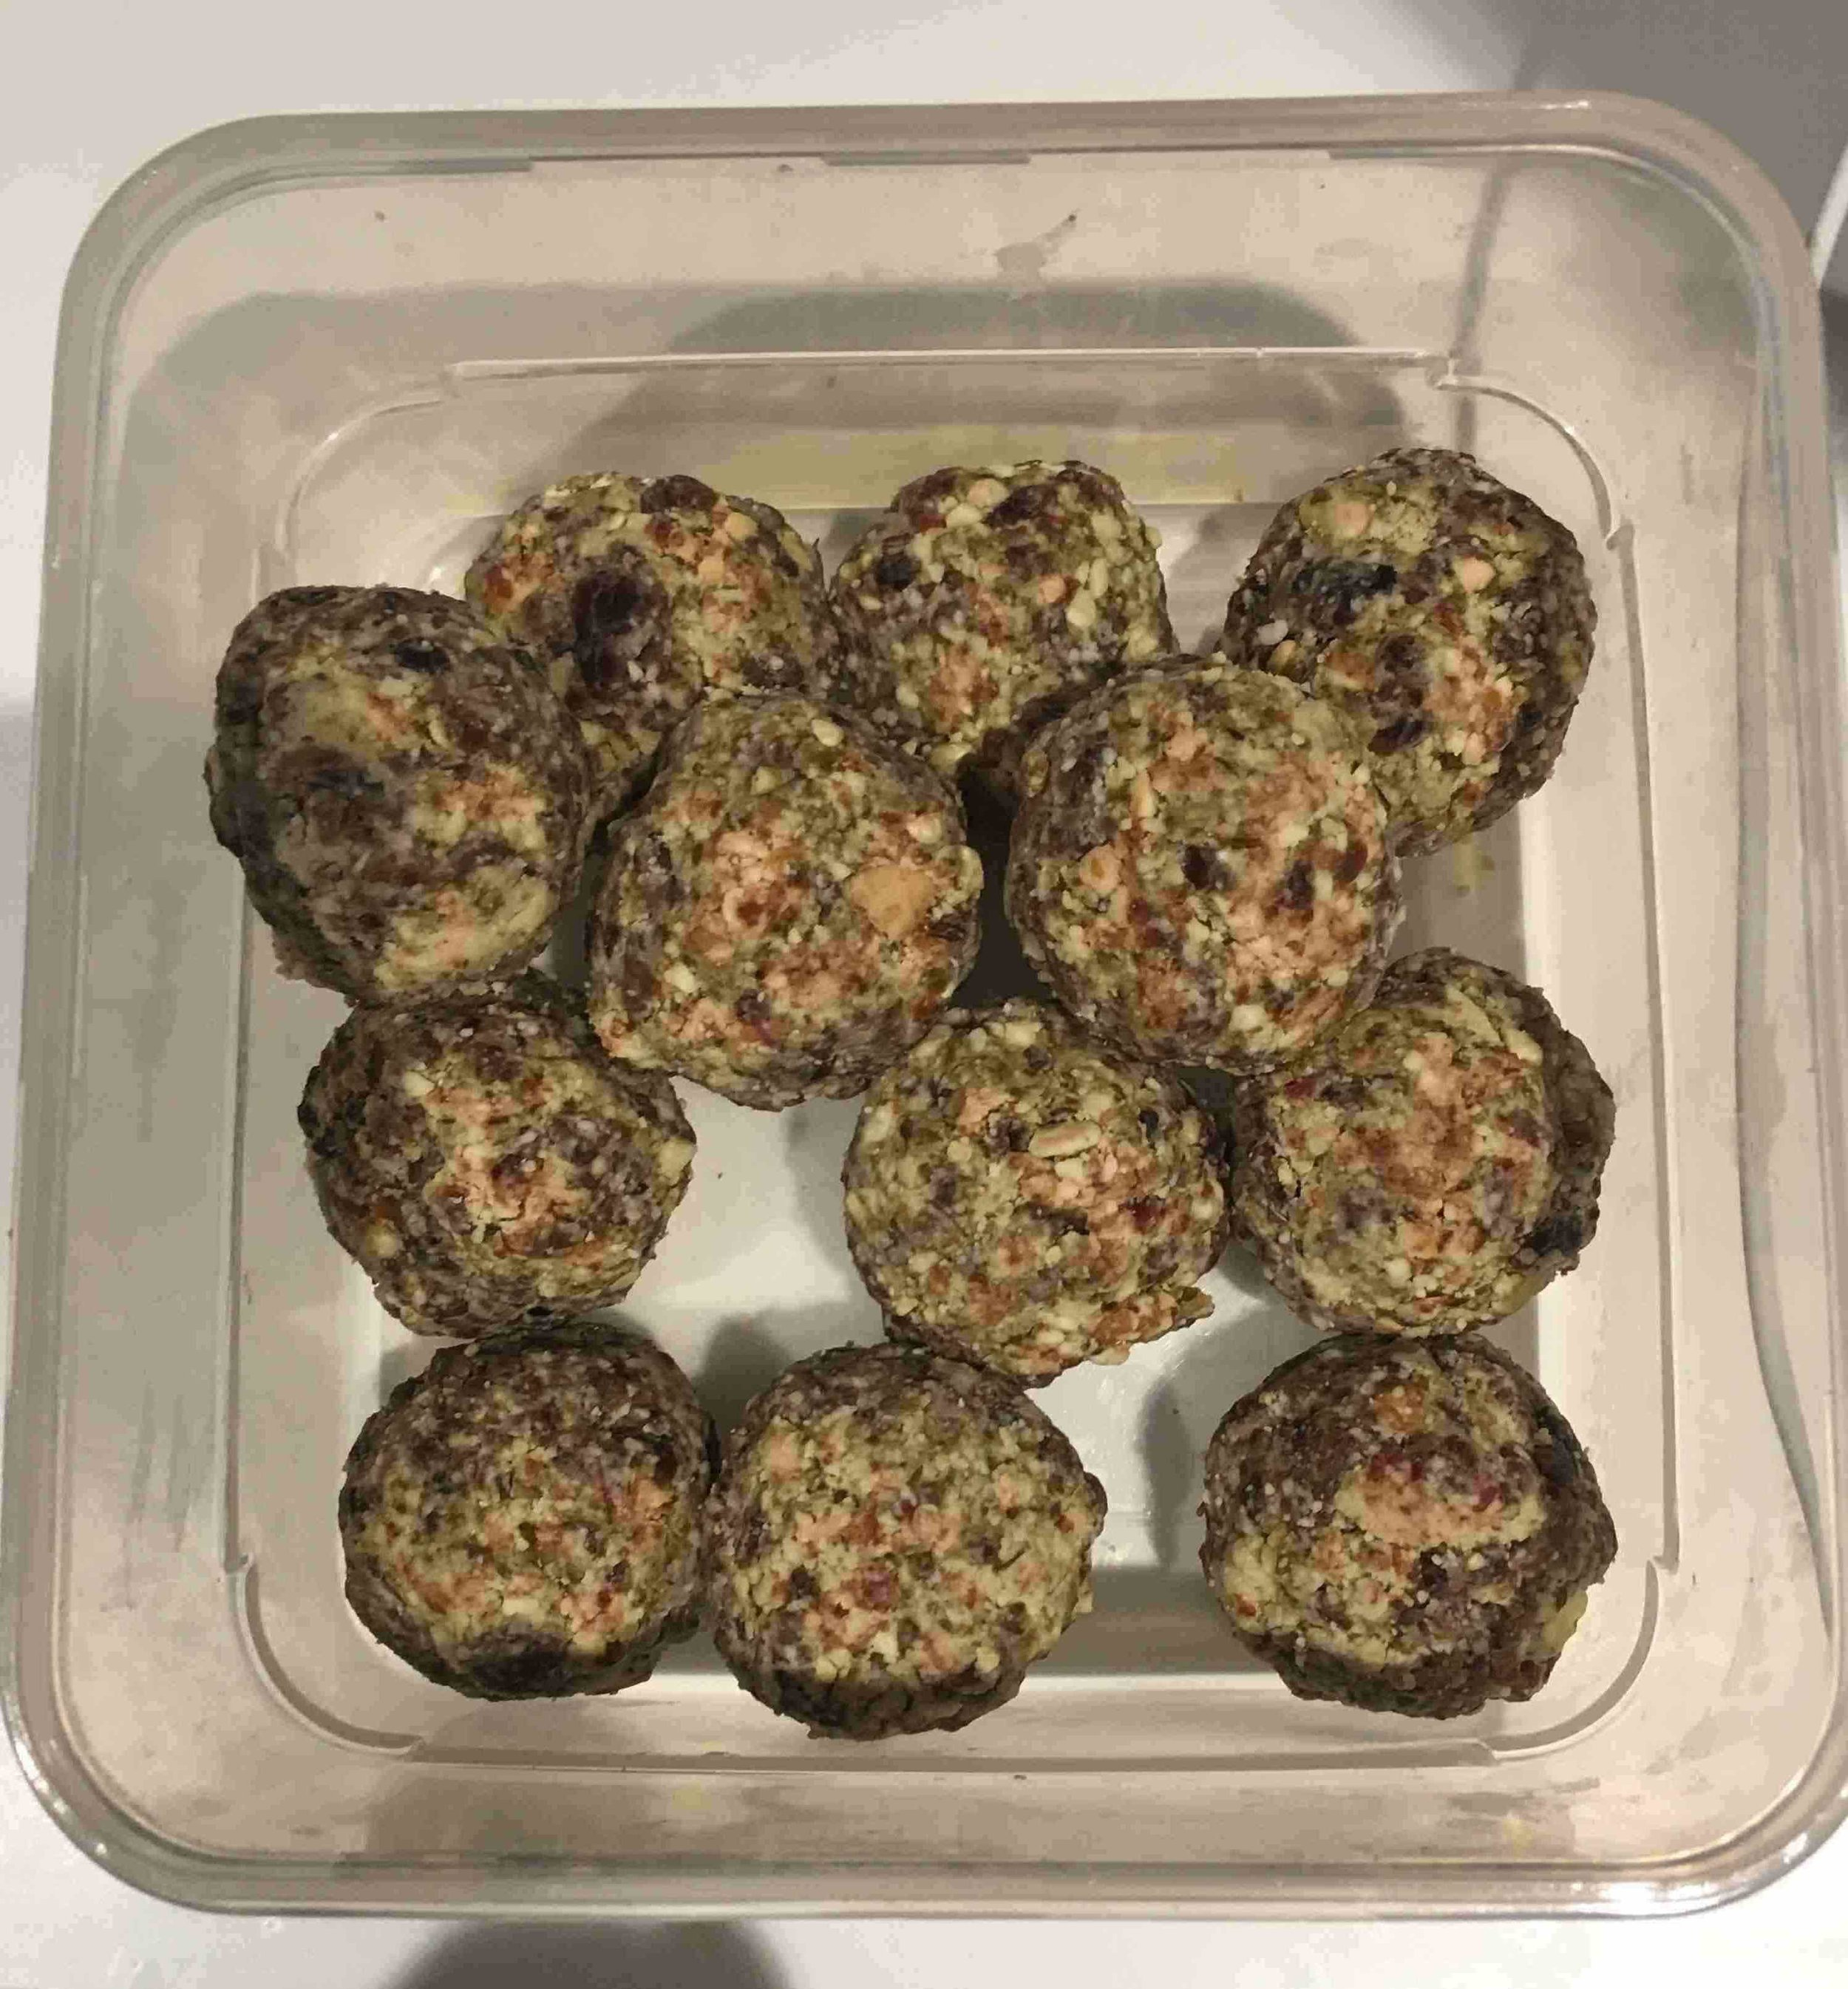 I was becoming addicted to these energy balls